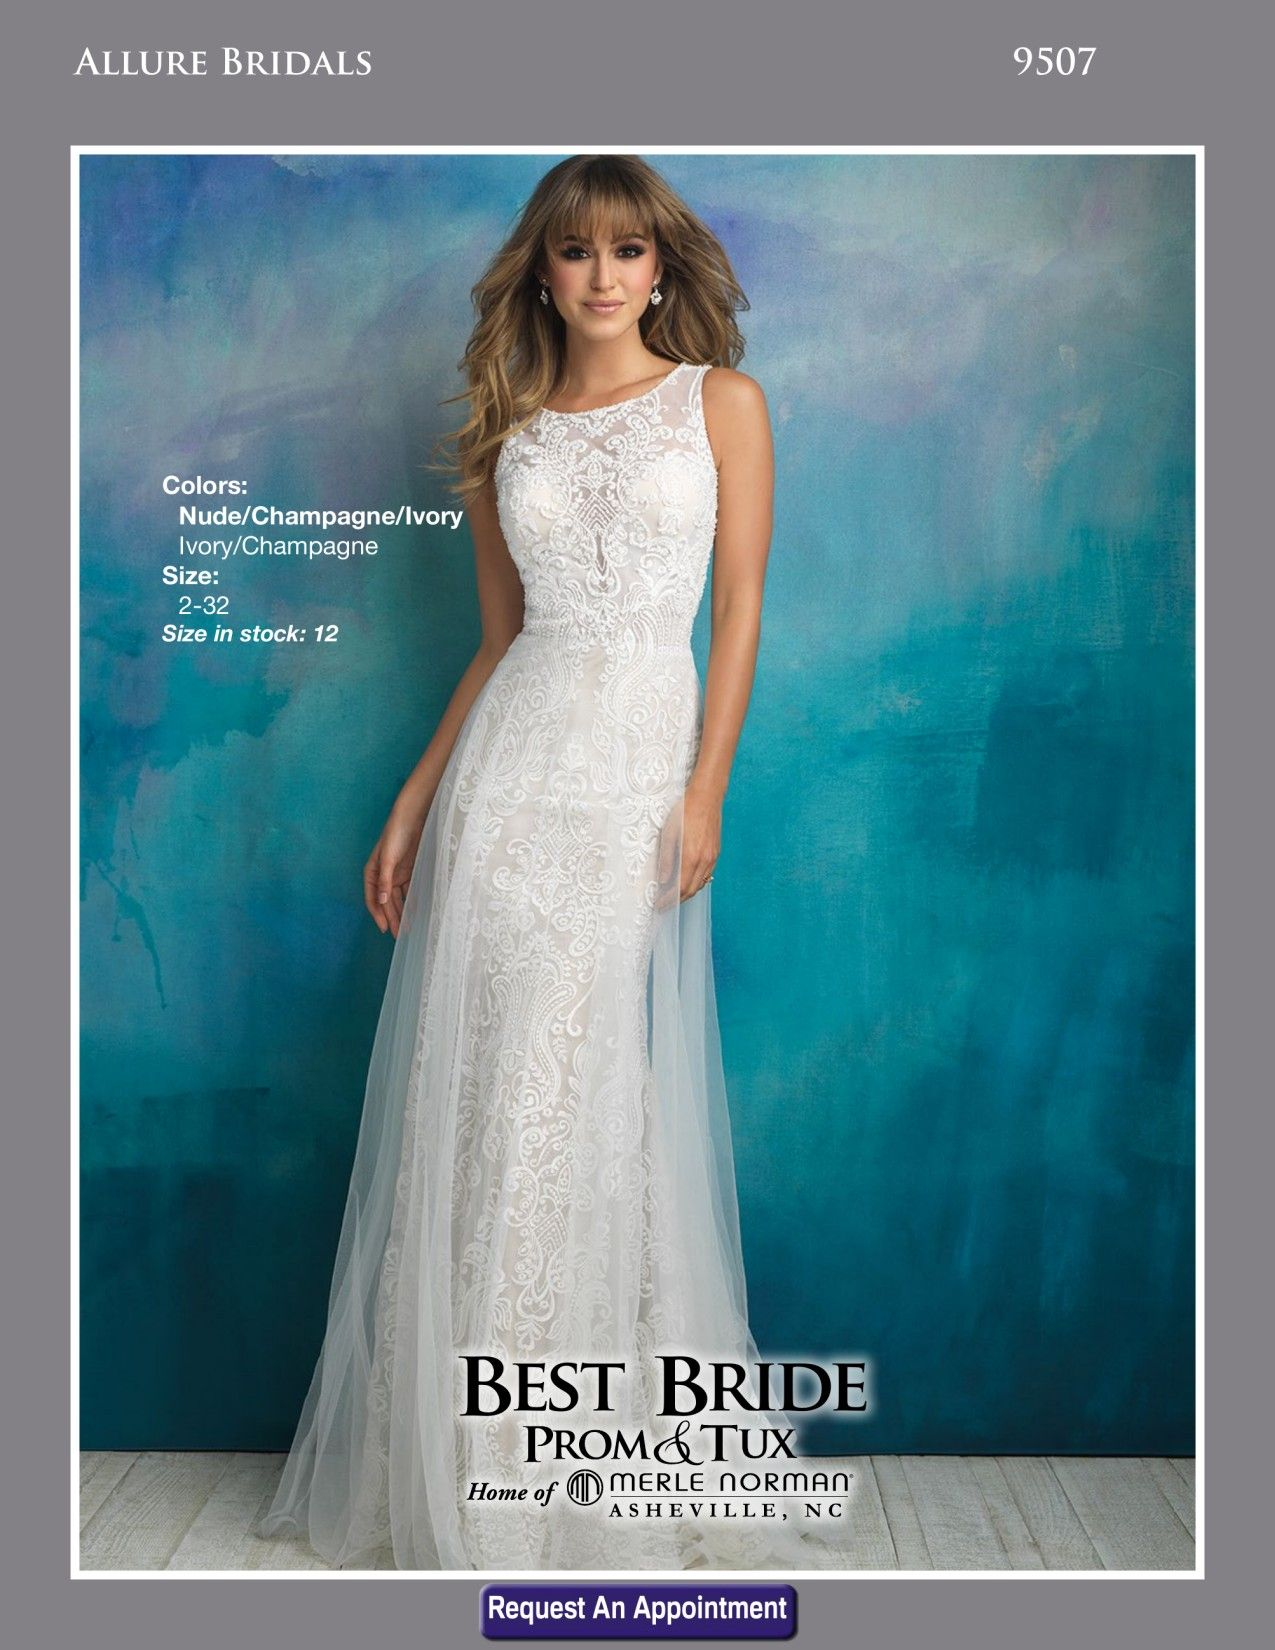 810ad90b203 Pin by Best Bride Prom   Tux on Allure Bridals in 2019